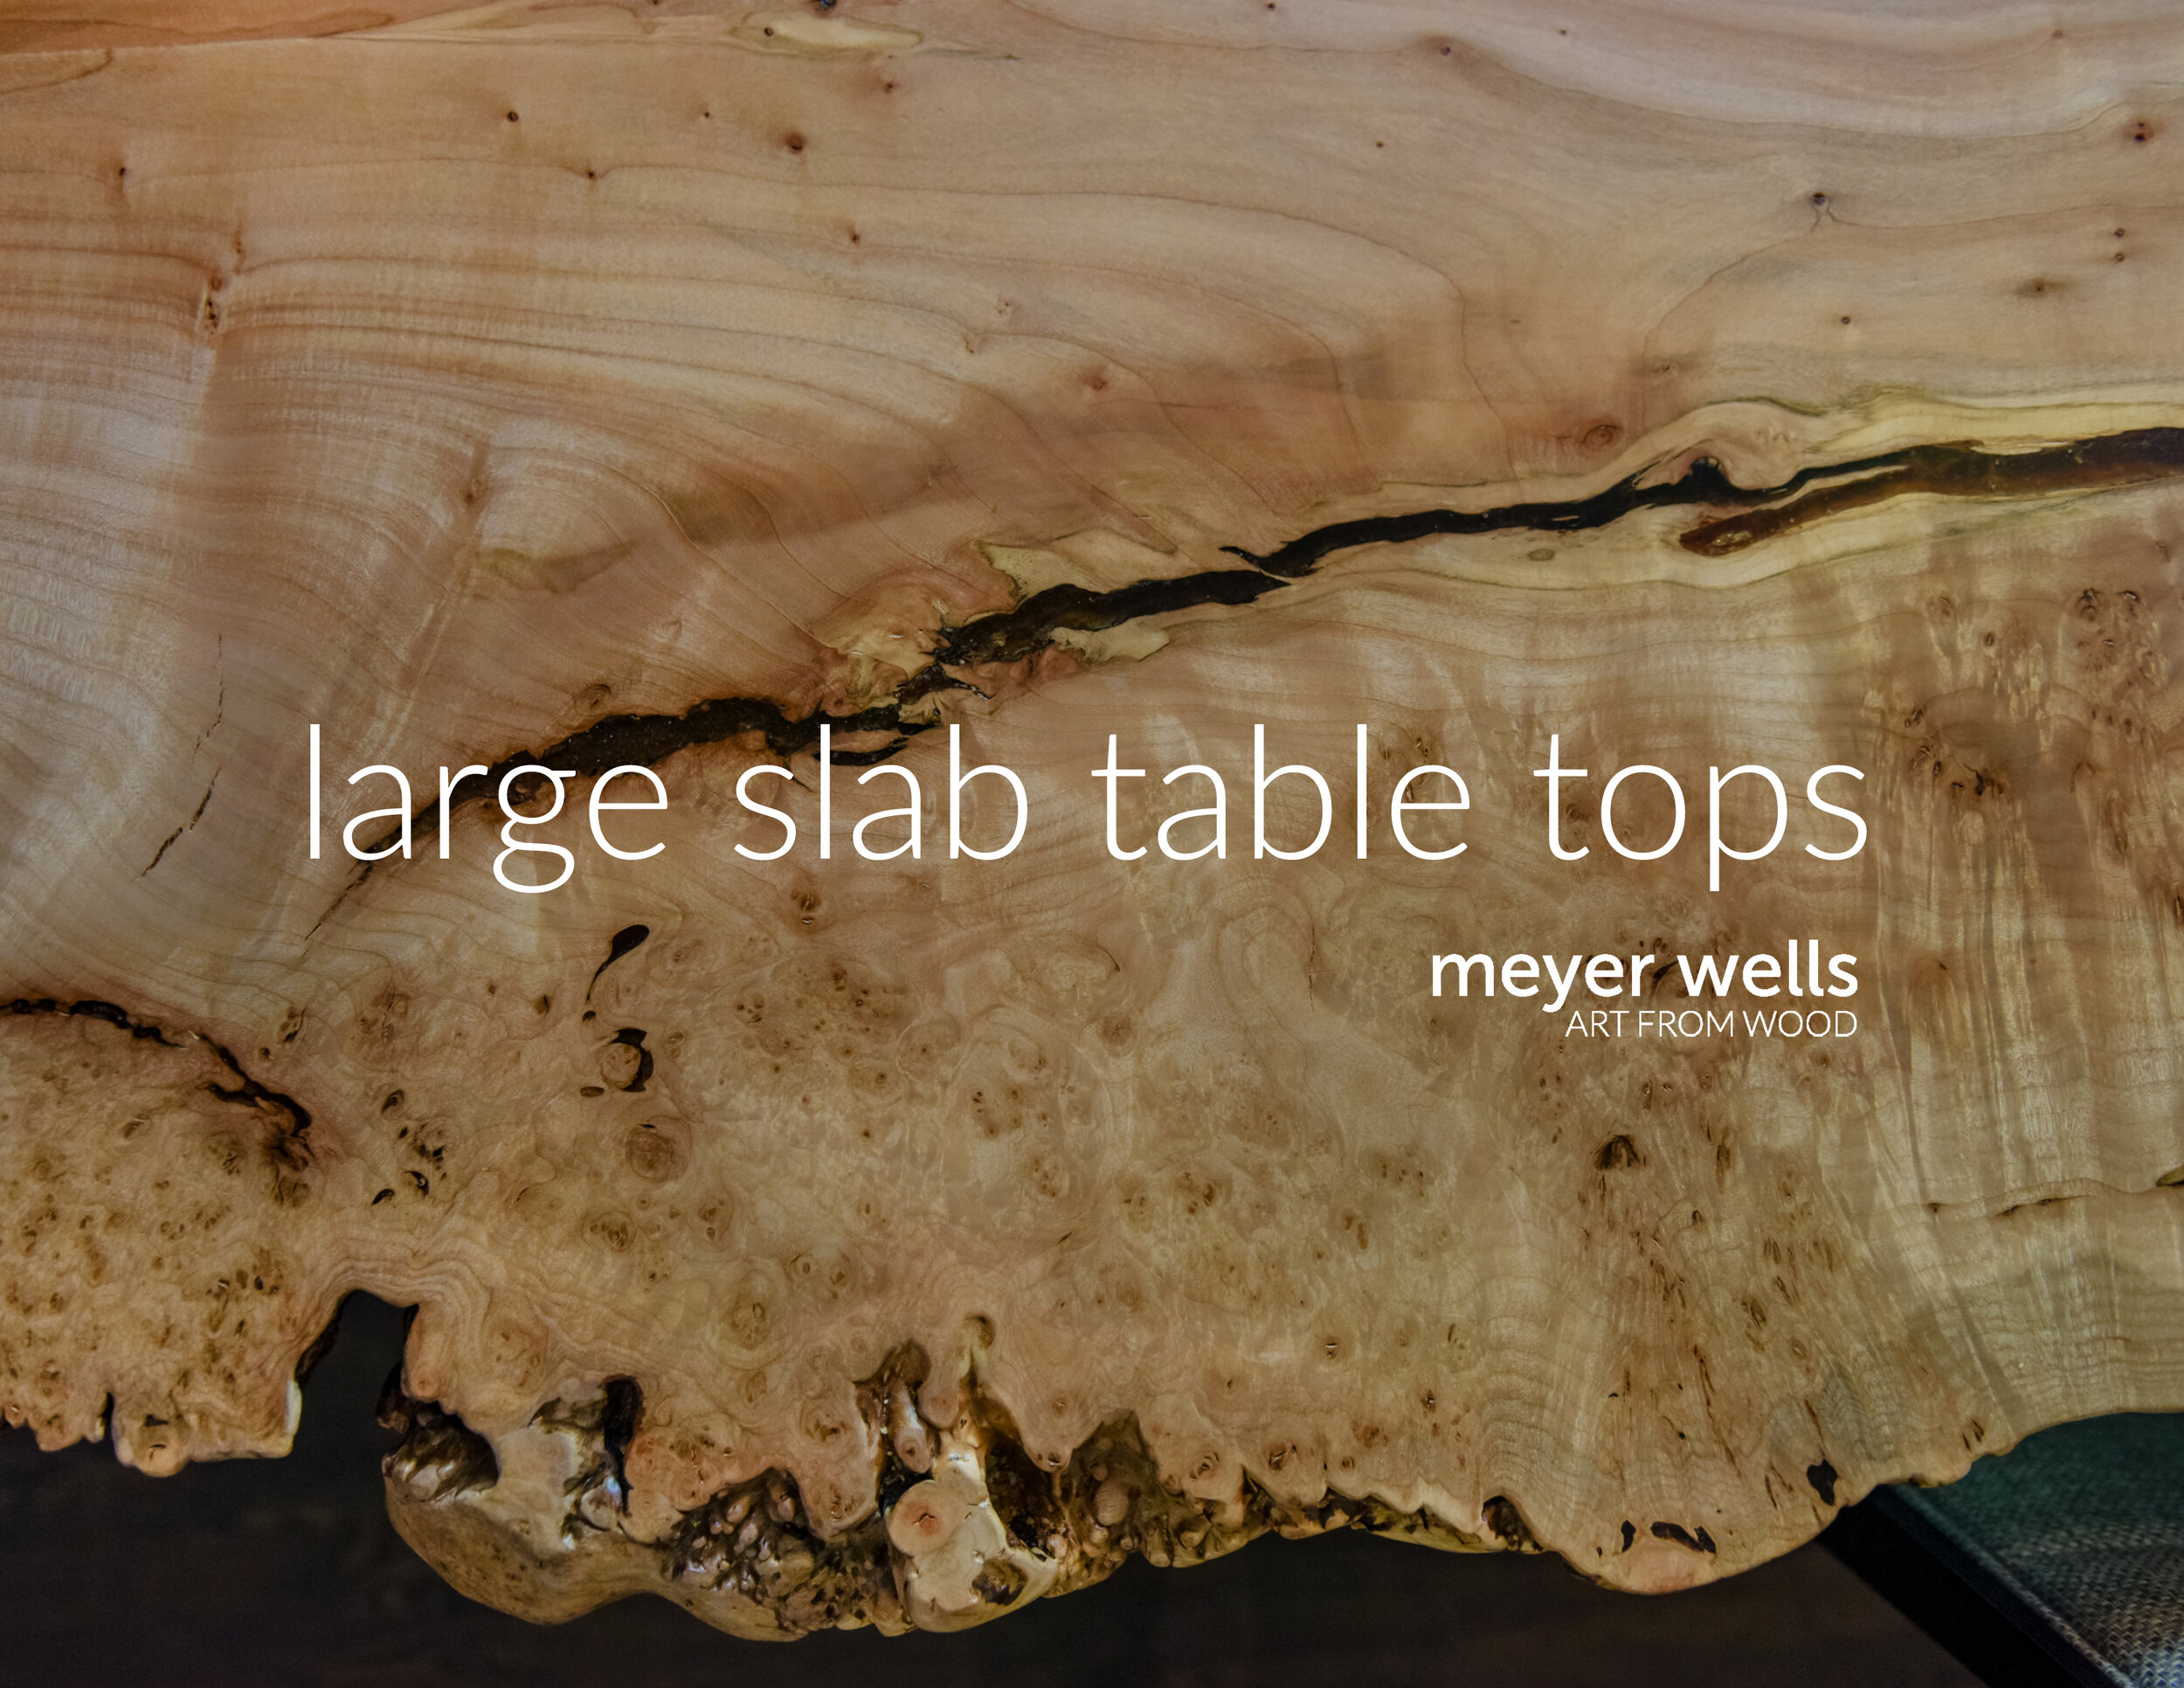 LARGE SLAB TABLE TOPS